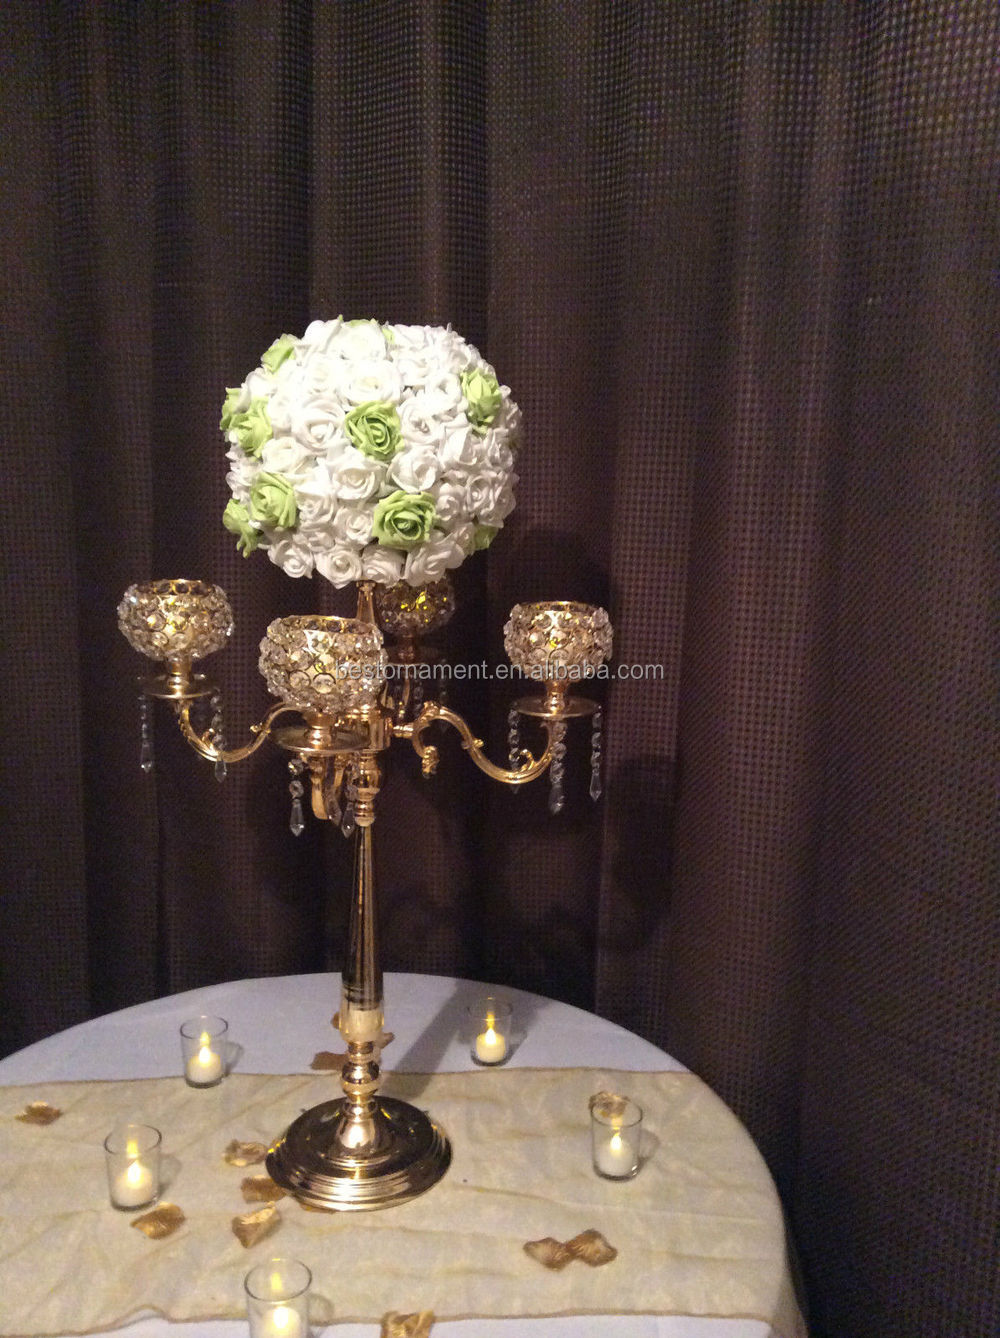 Wedding gold arm candelabra centerpieces view tall